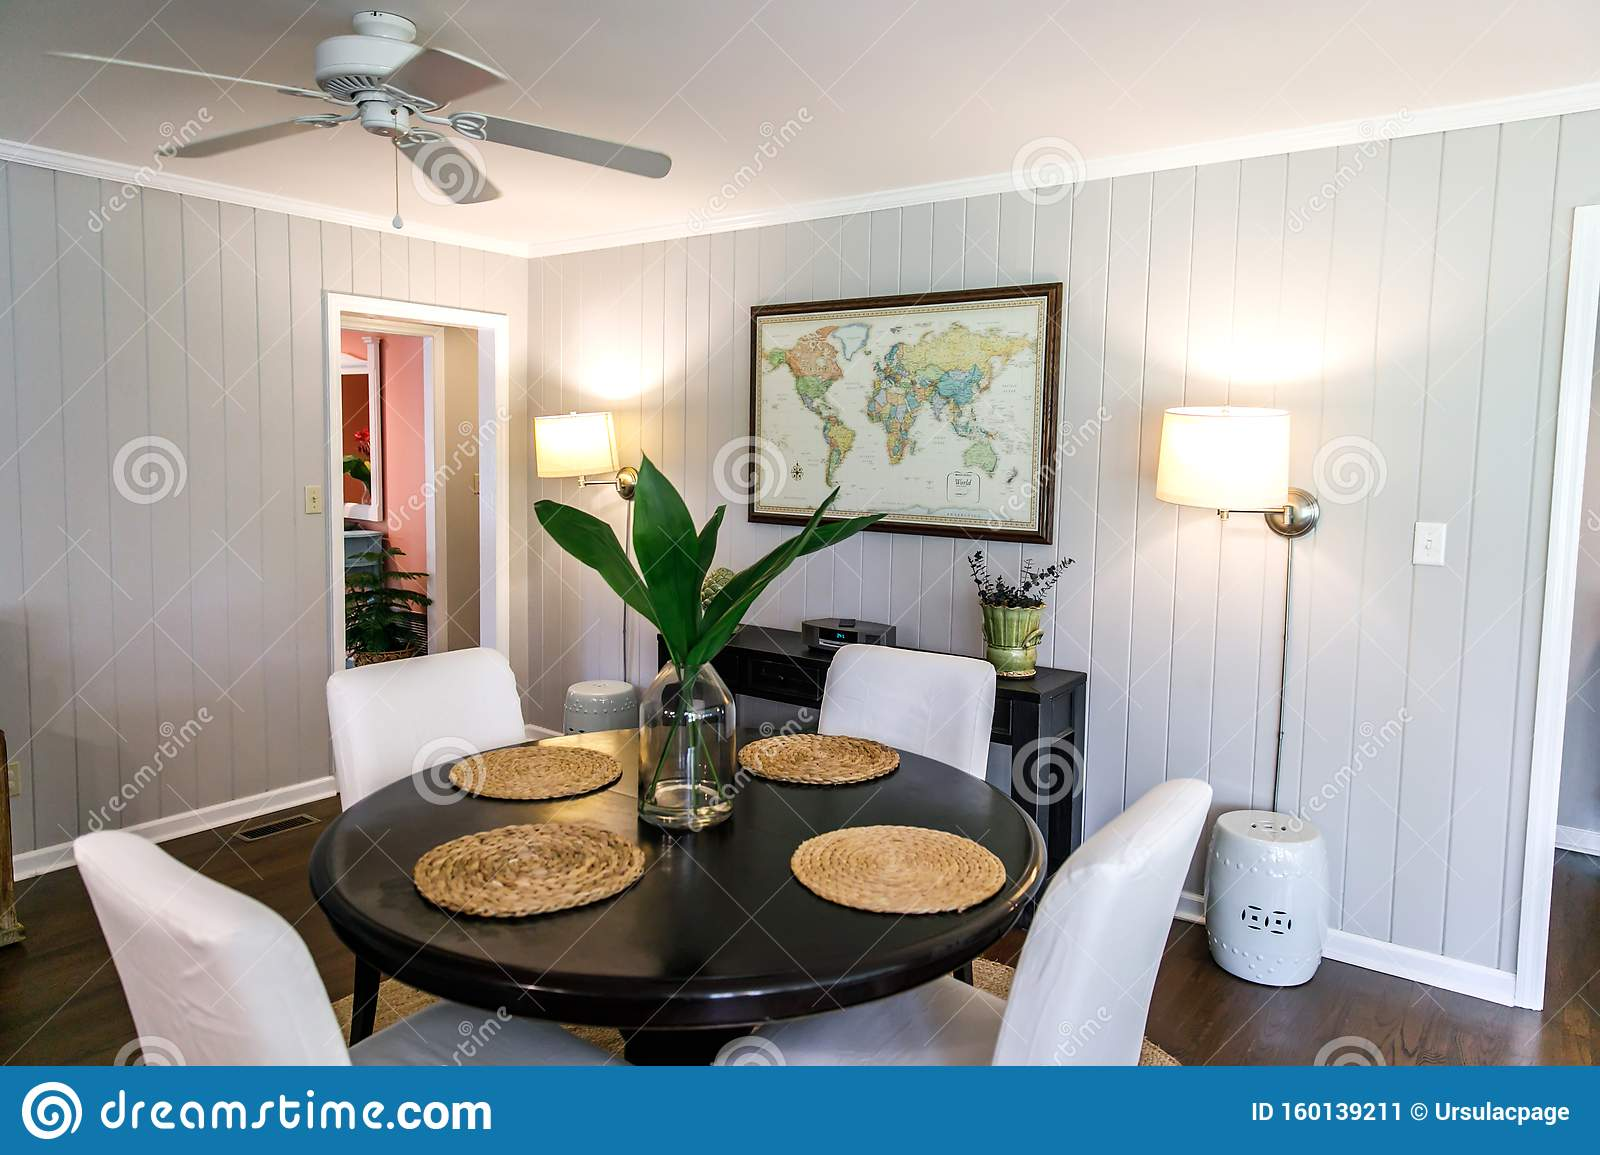 Small Eat In Kitchen Dining Room With A Small Table For Four Stock Image Image Of Chairs Family 160139211